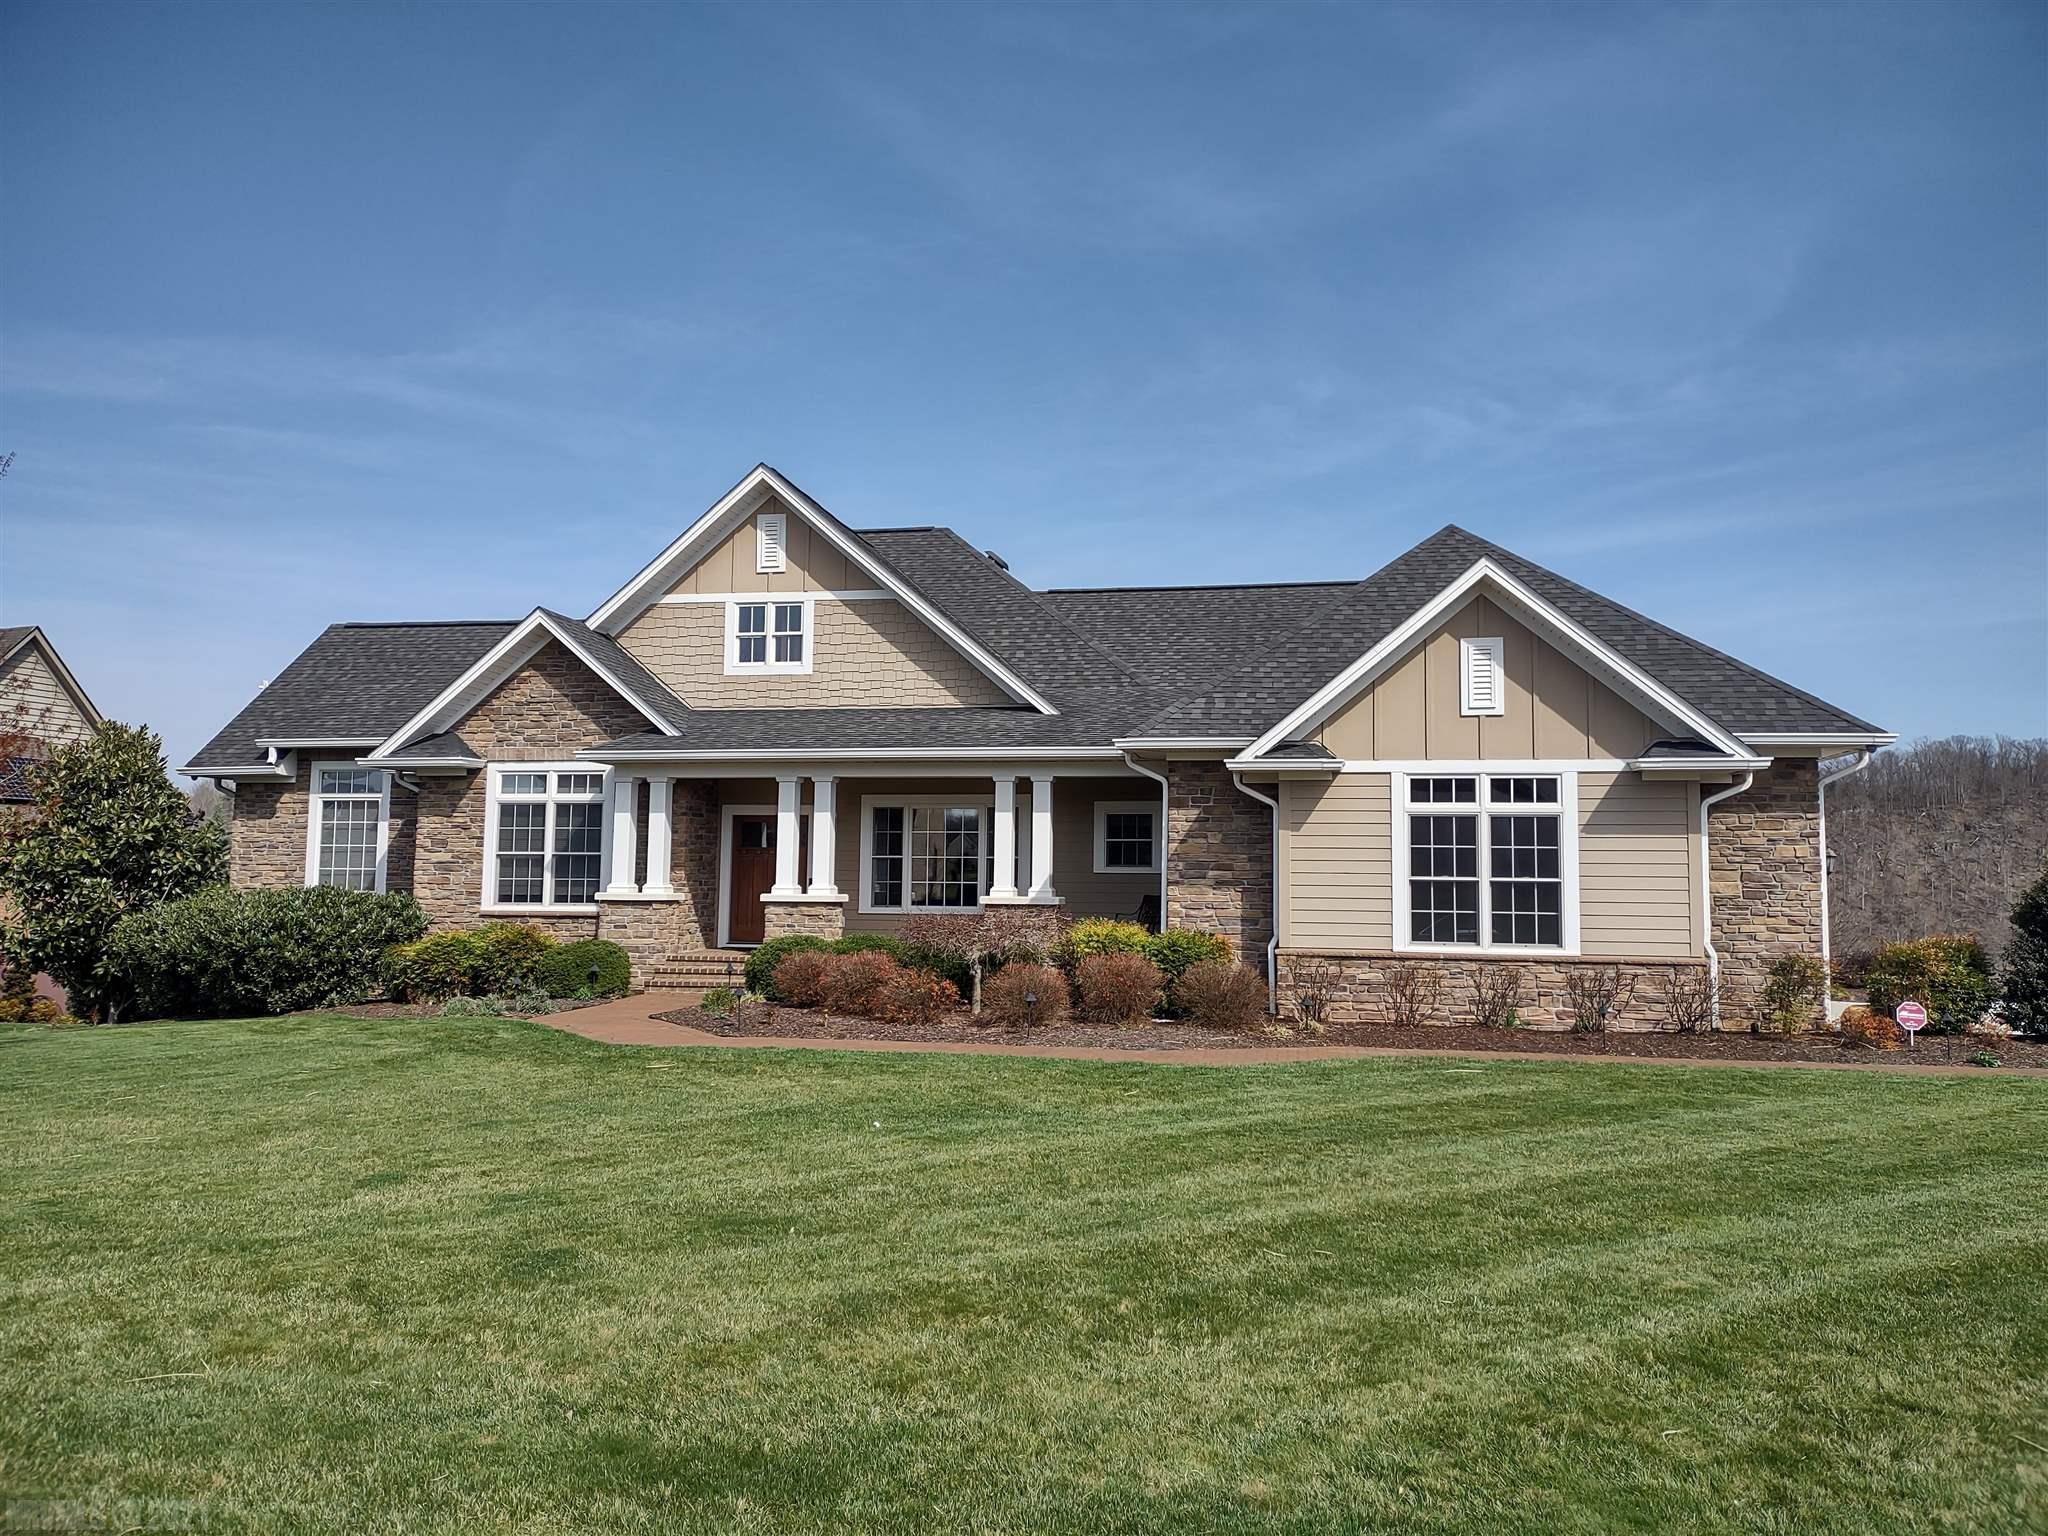 Gorgeous Mountainside Ranch on one of the most beautiful lots in the New River Valley overlooking the Pete Dye River Course of Virginia tech.  Everything in this home is custom and the views are breath taking.